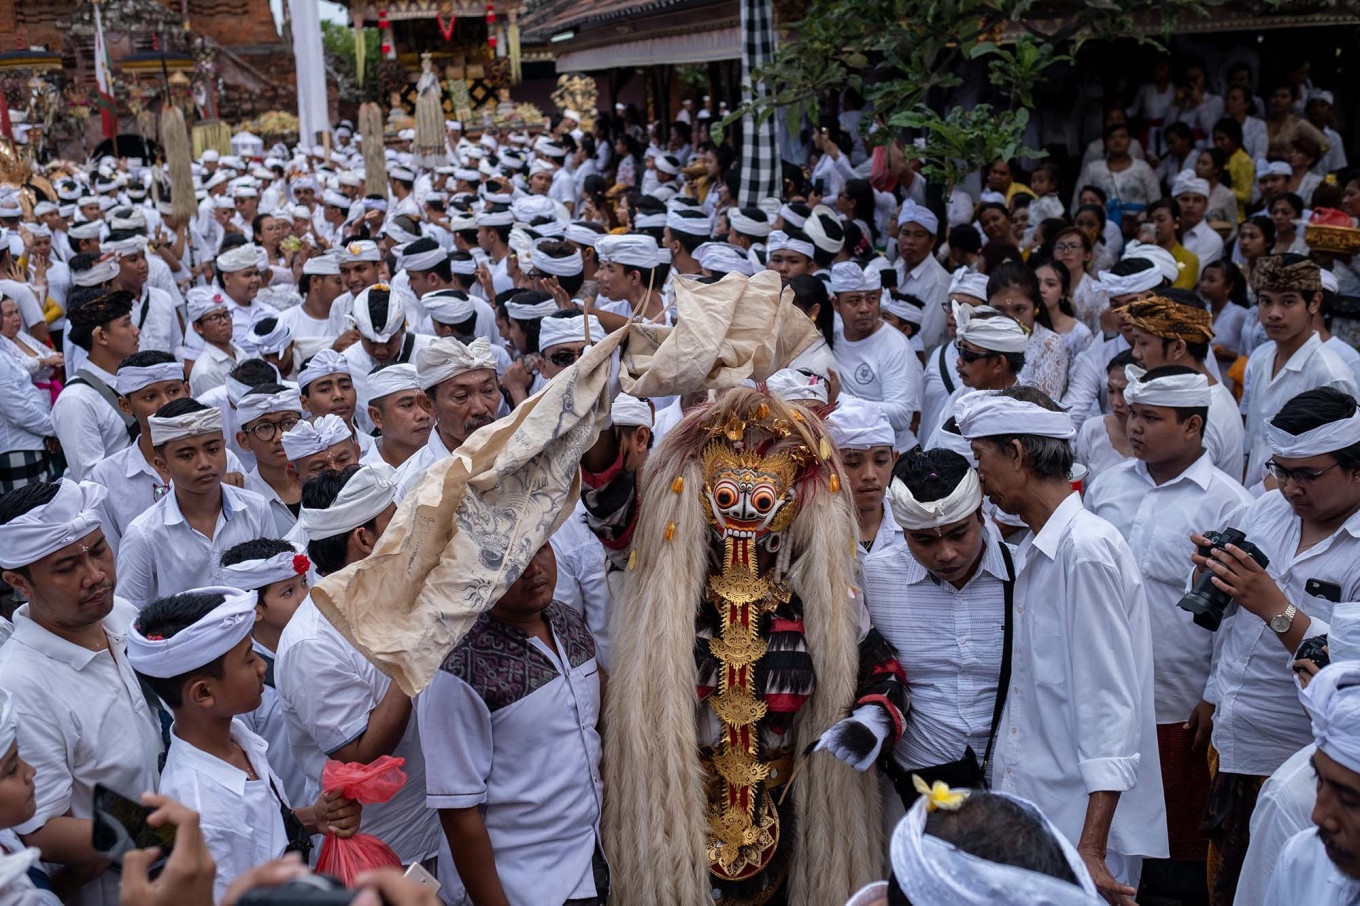 A Balinese man unconsciously dances while wearing a sacred Rangda (golden-haired and fanged figures usually representing the goddess Durgha, known as Shiva's wife) during Ngerebong. JP/Agung Parameswara